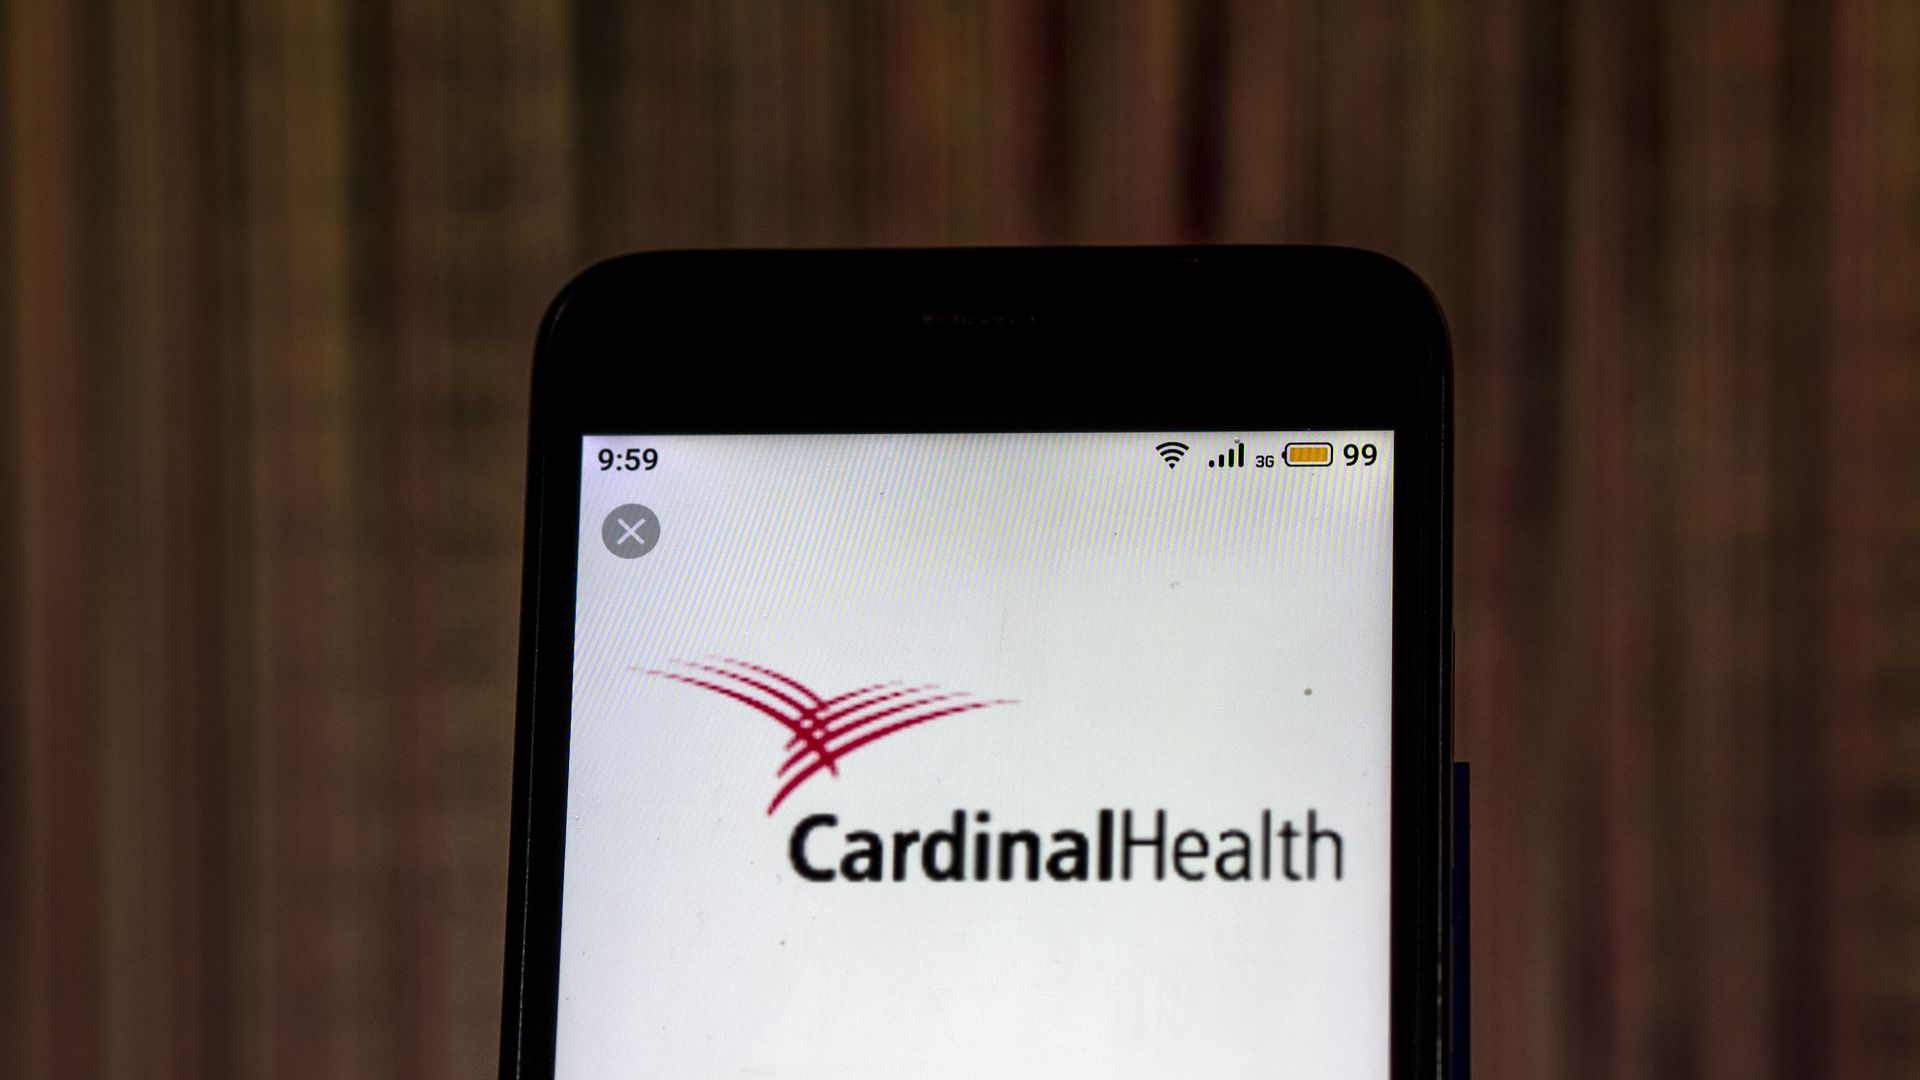 A smart phone with the Cardinal Health logo on the screen.